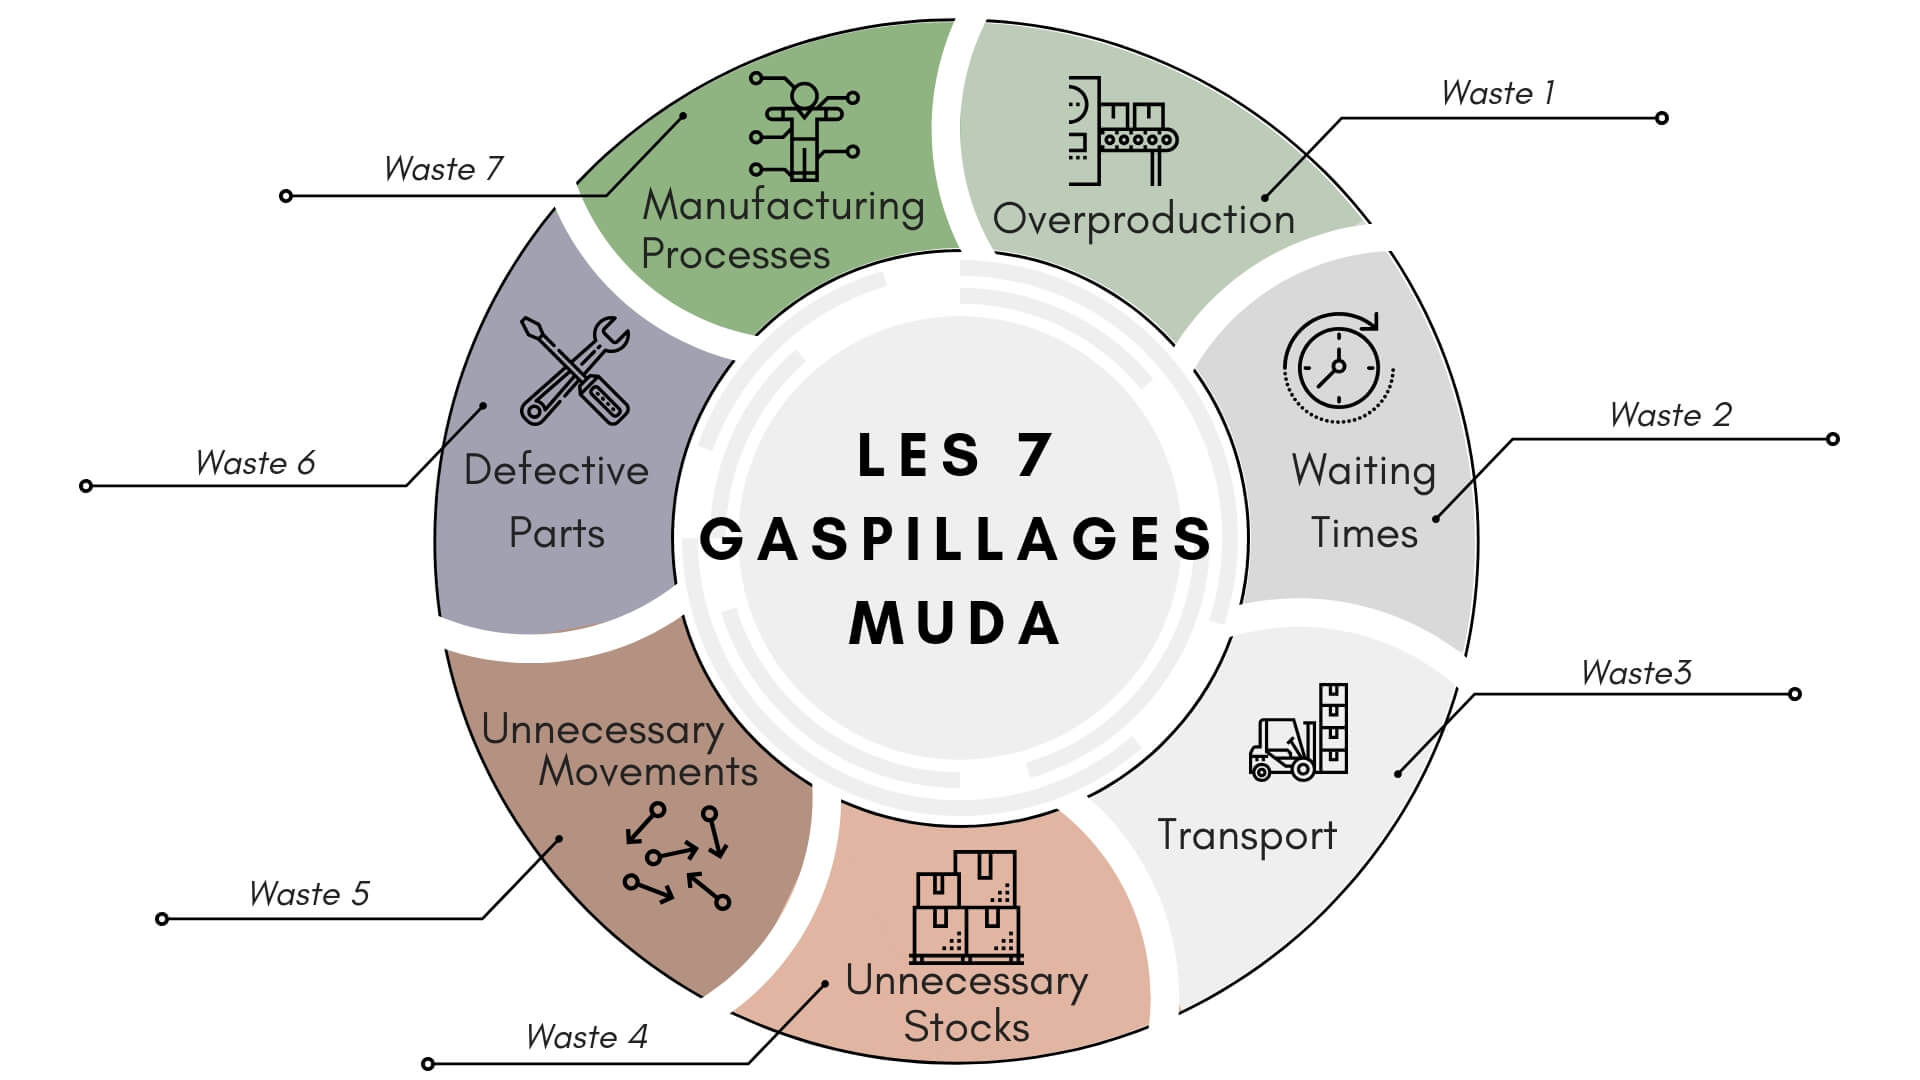 Presentation of the 7 wastes of the LEAN MUDA method